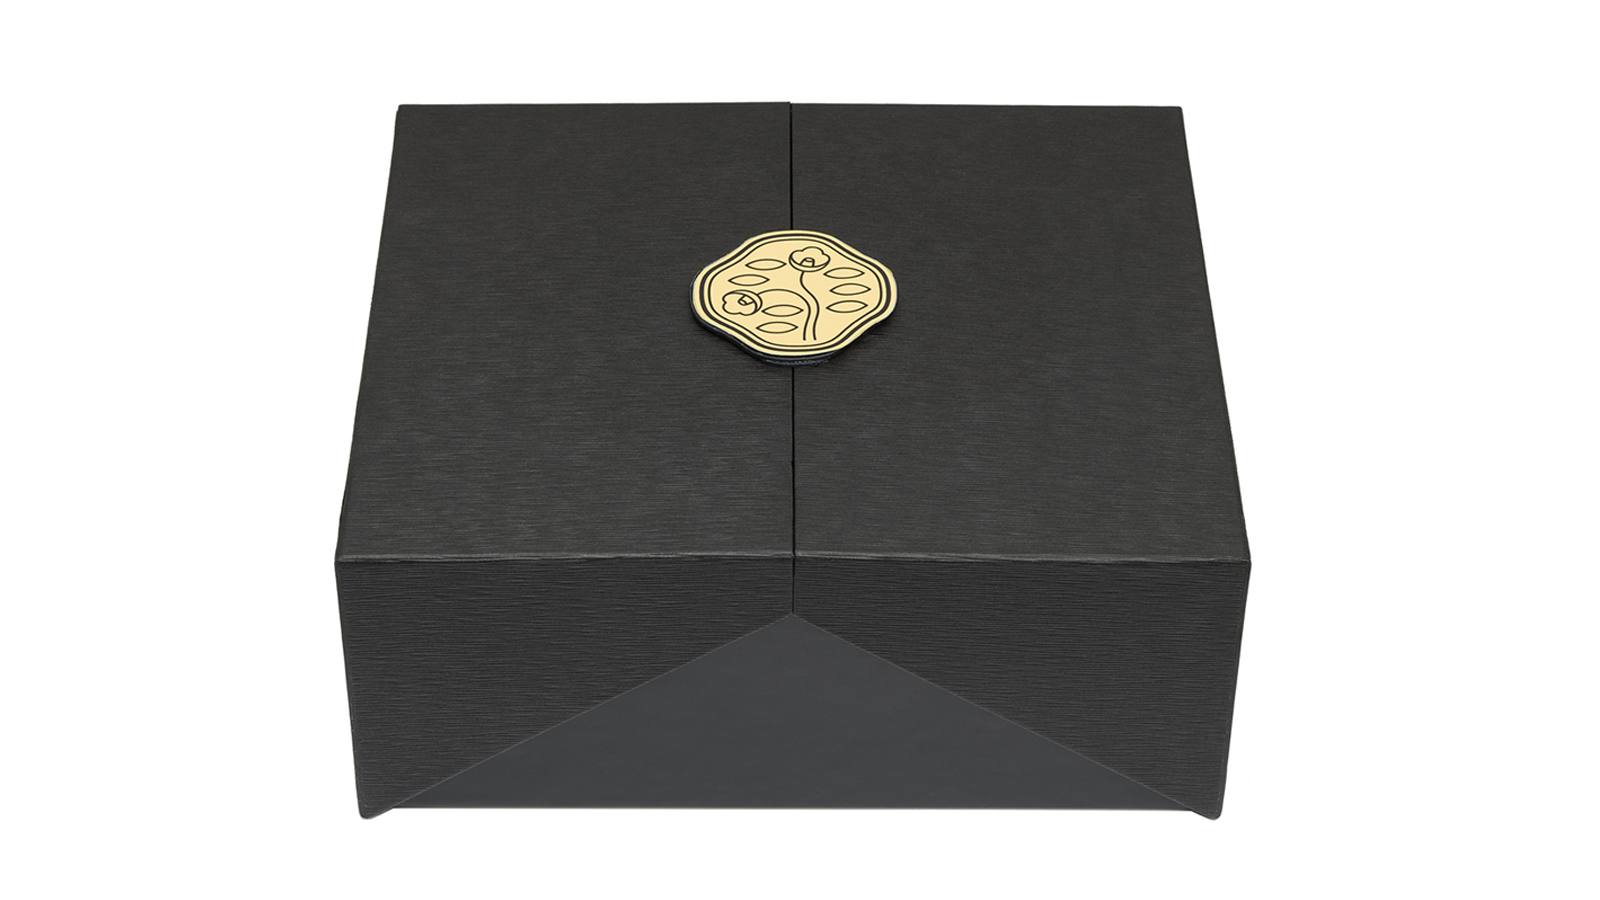 1-2S_SHISEIDO-coffret -Design-Packaging.jpg